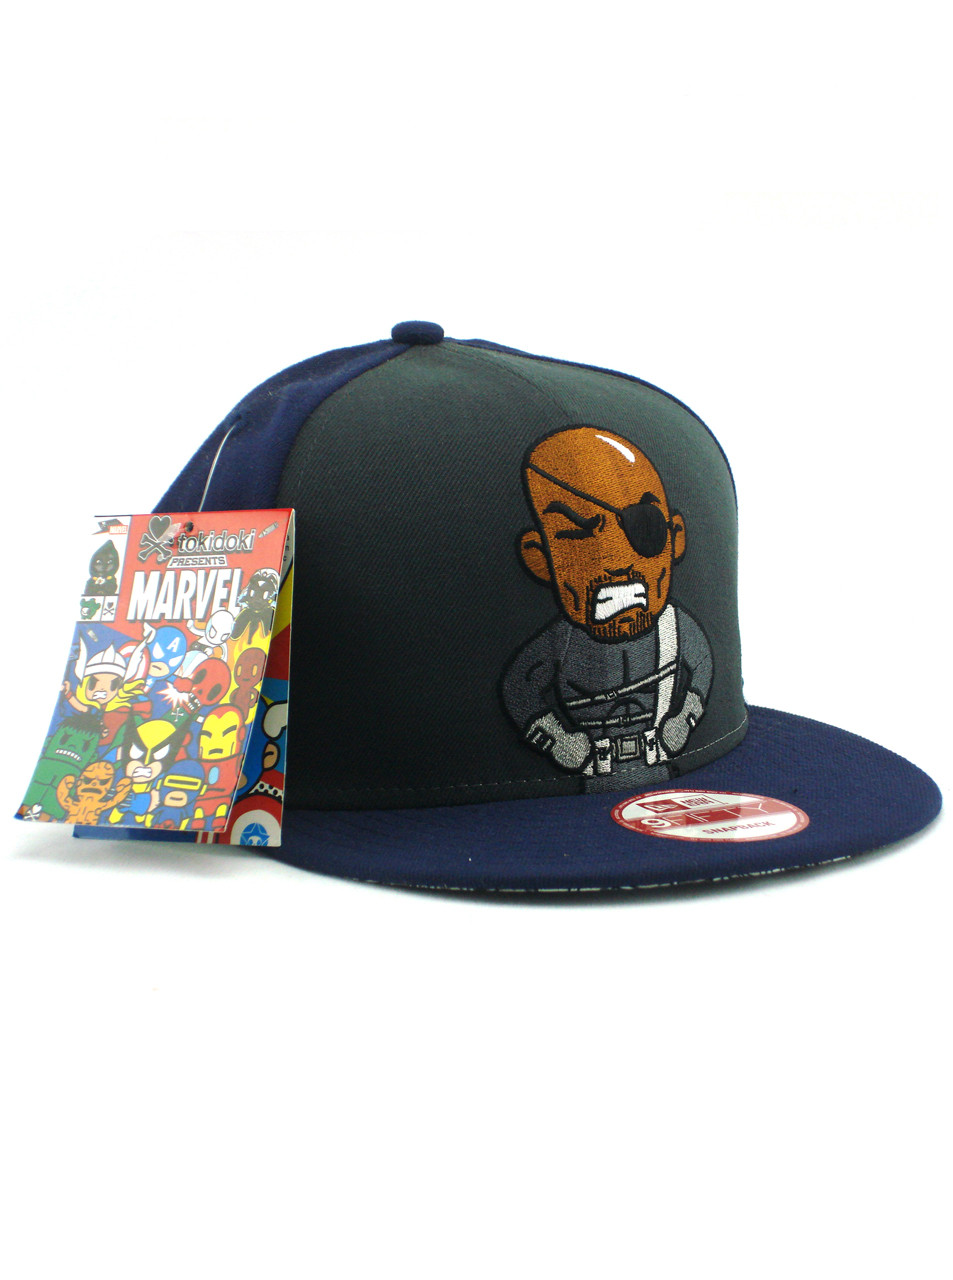 aa55b3e02de New Era Tokidoki Nick Fury 9fifty Snapback Hat View 1